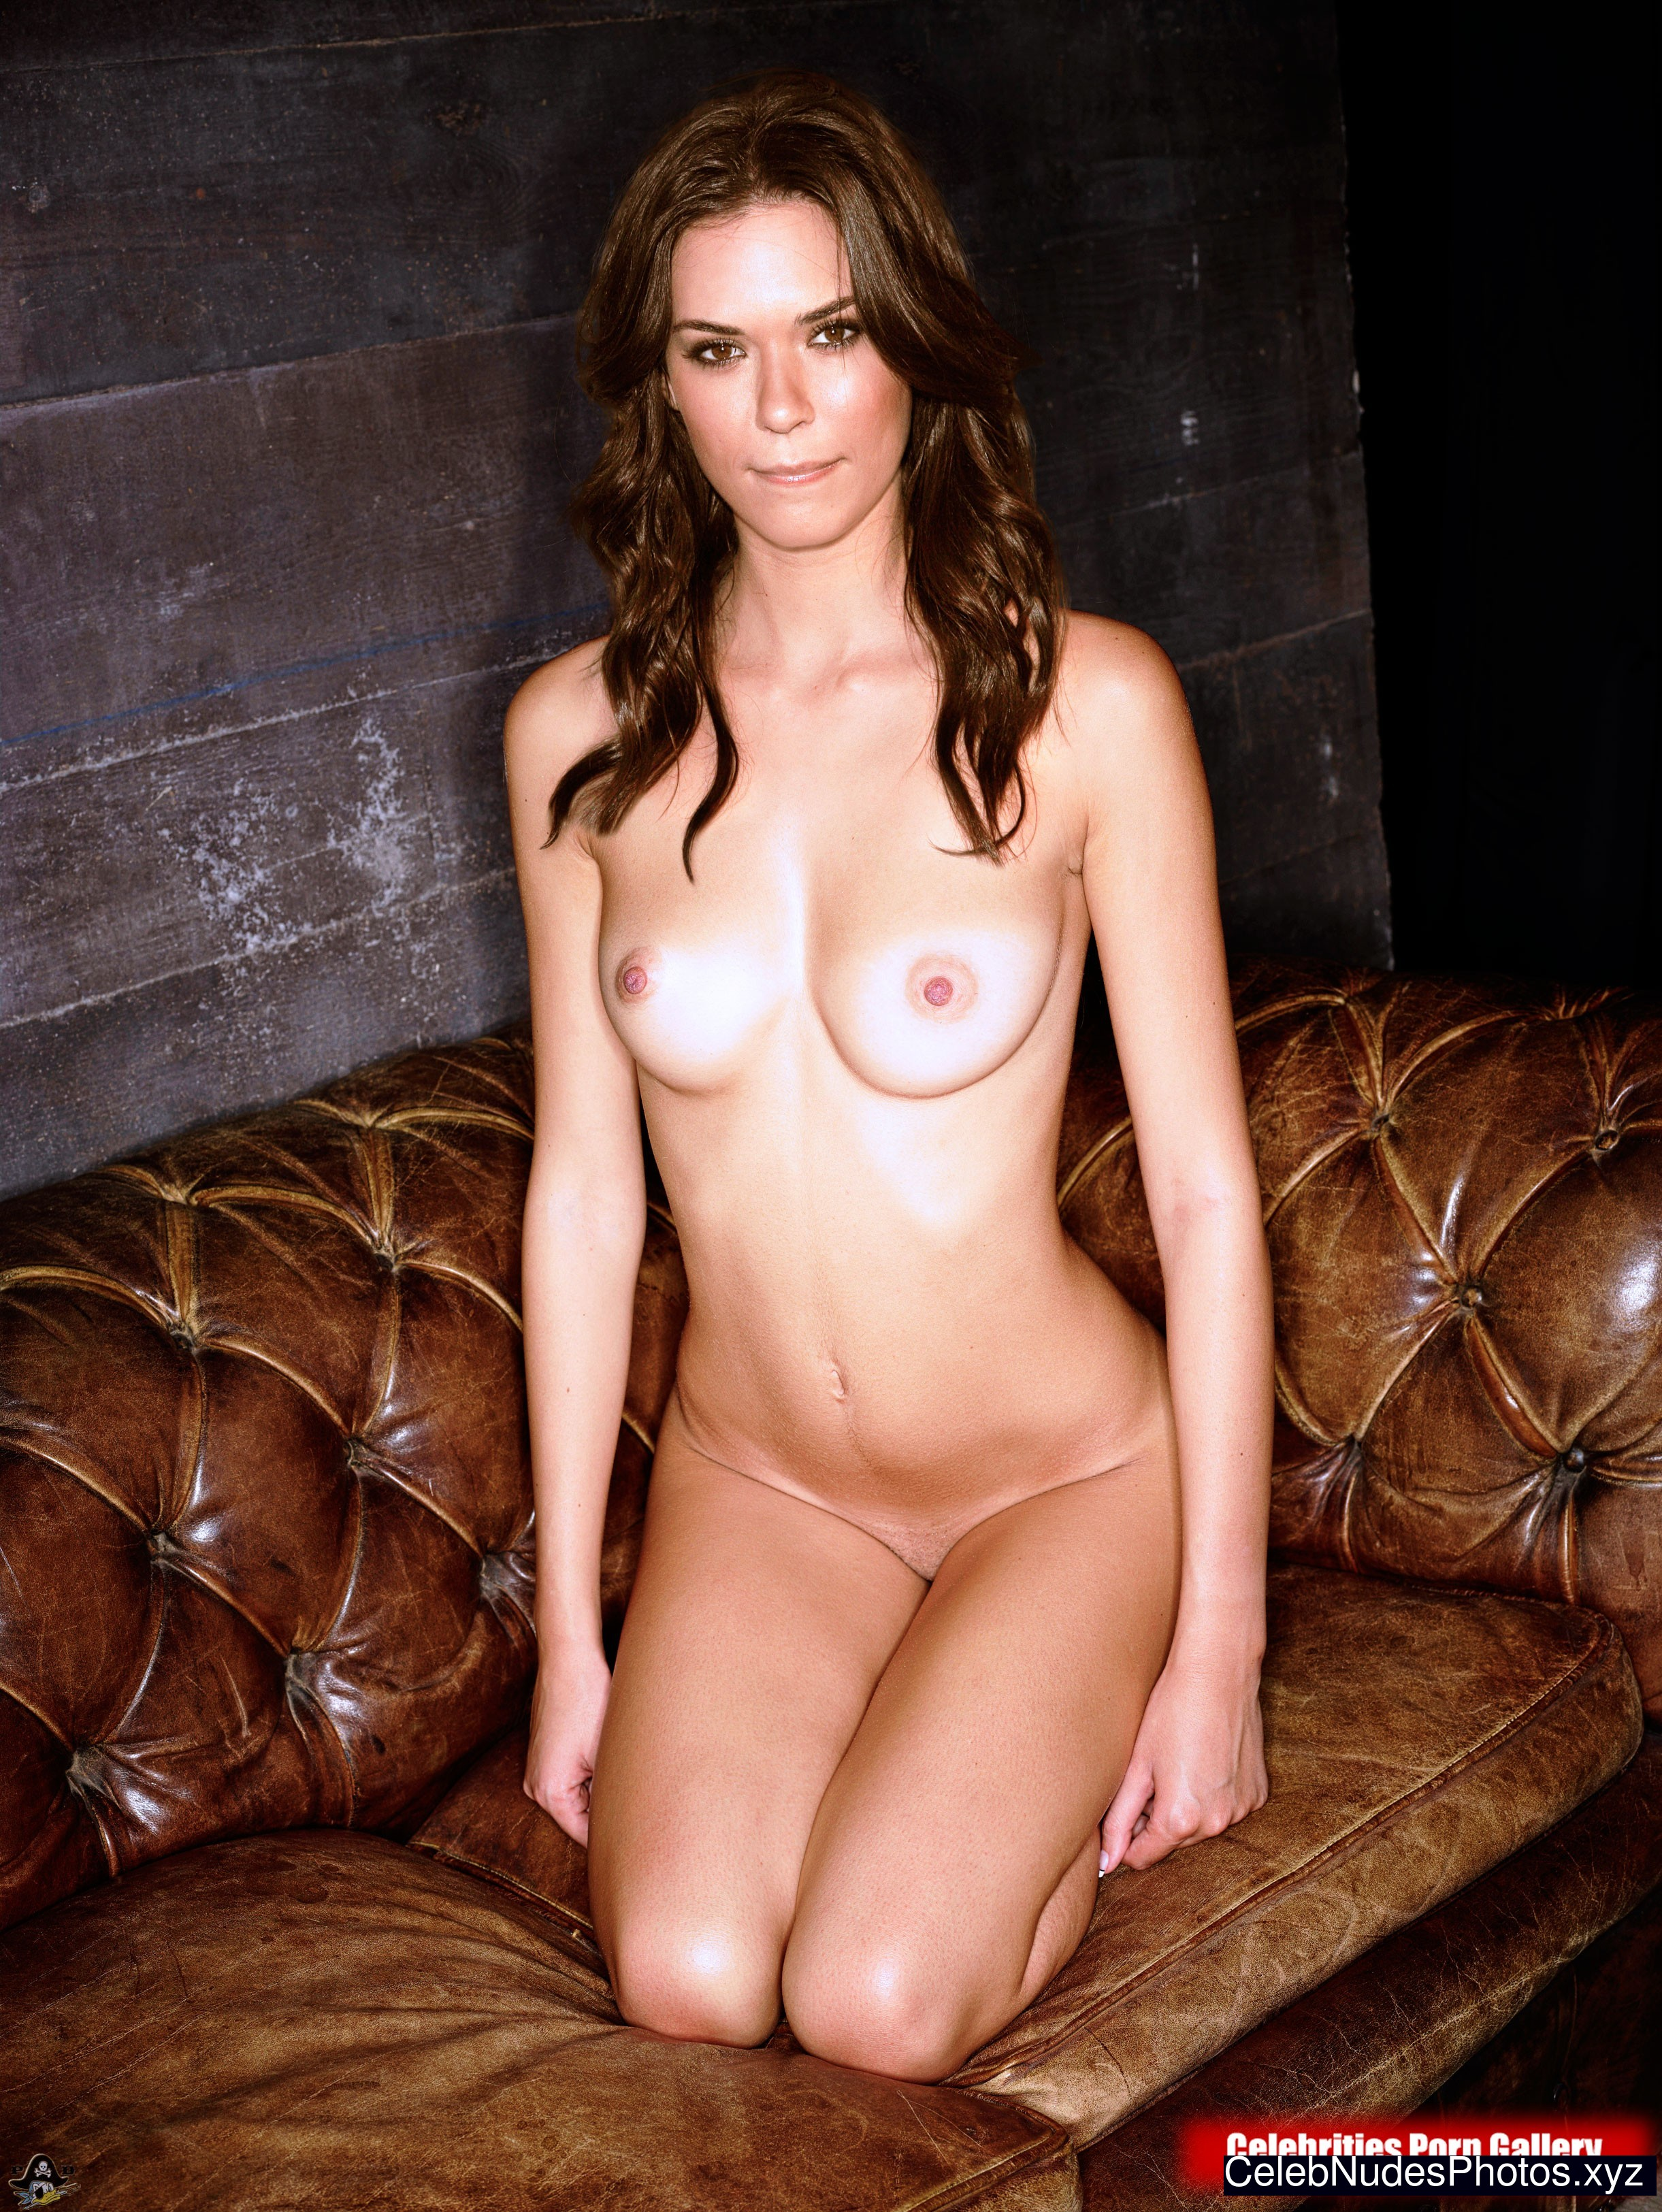 hot nude celebritys